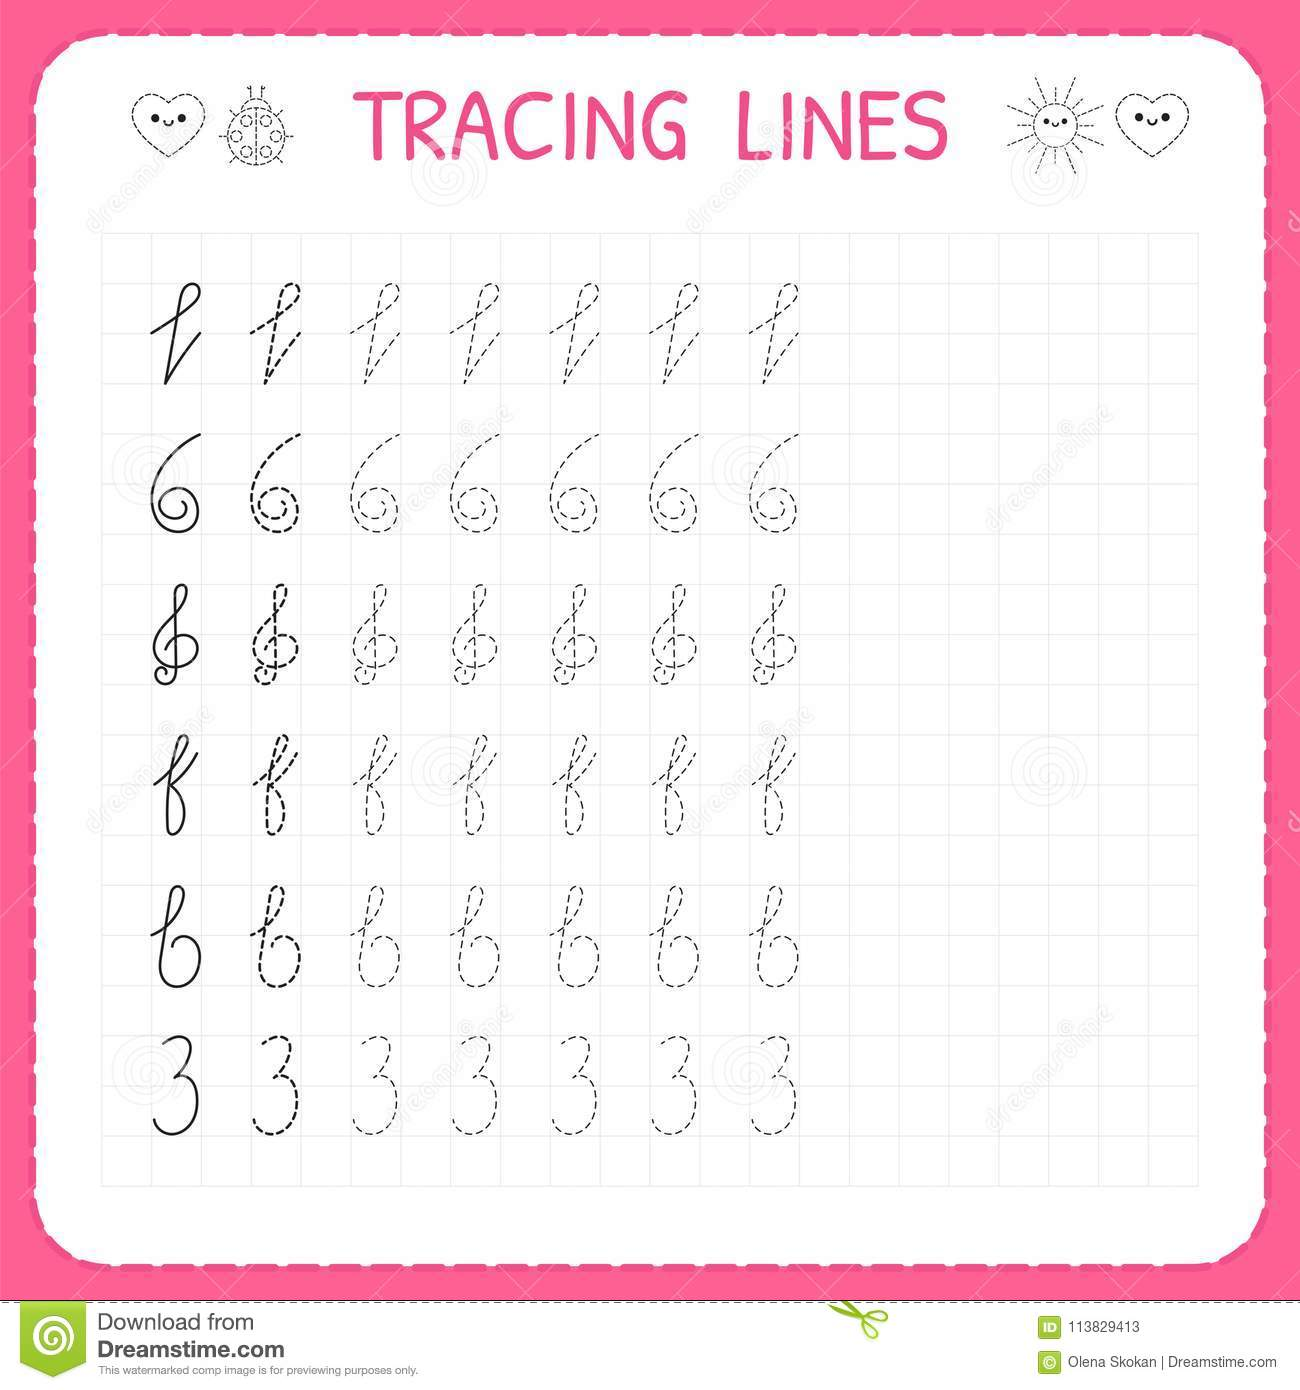 Tracing Lines Worksheet For Kids Trace The Pattern Basic Writing Preschool Or Kindergarten